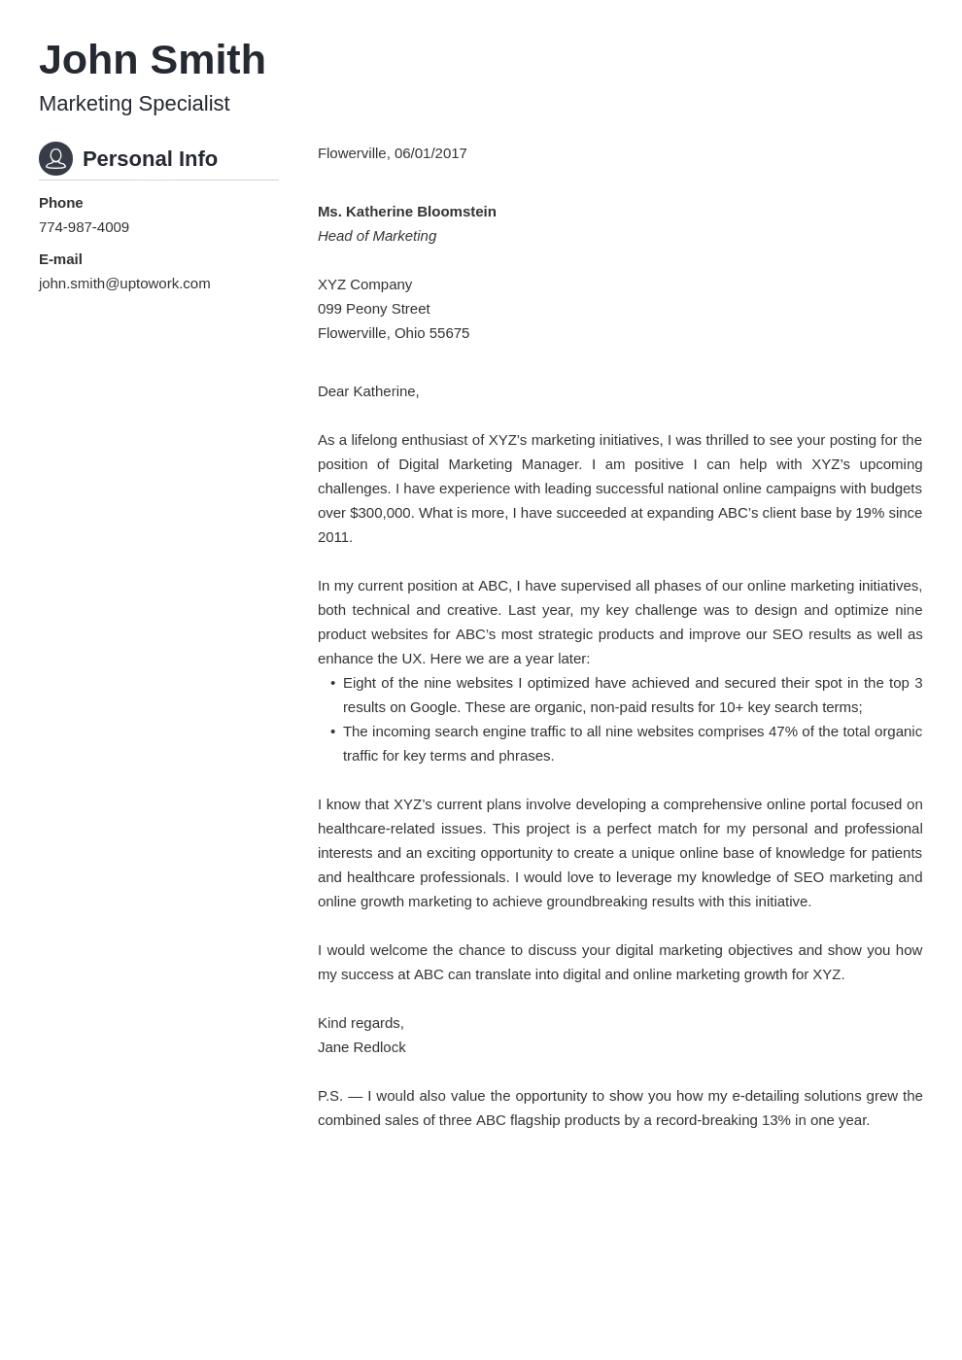 Professional cover letter Template Crisp